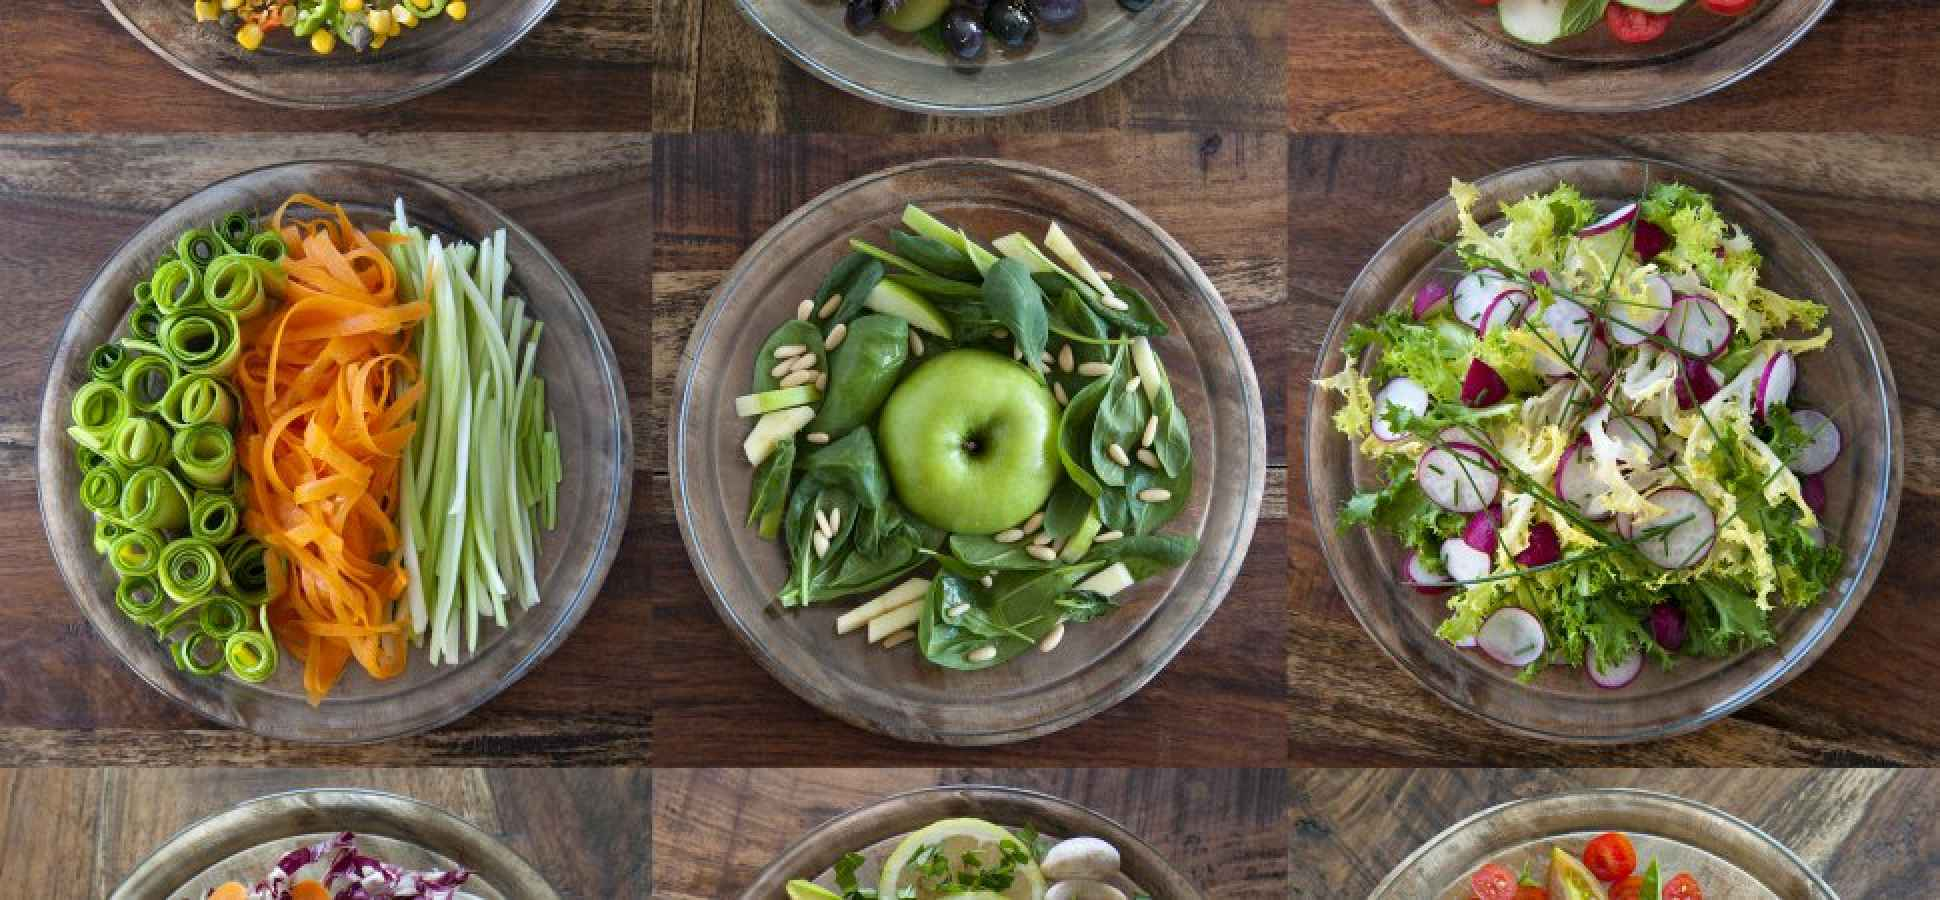 6 Tips For Eating Well After a Long Day at Work